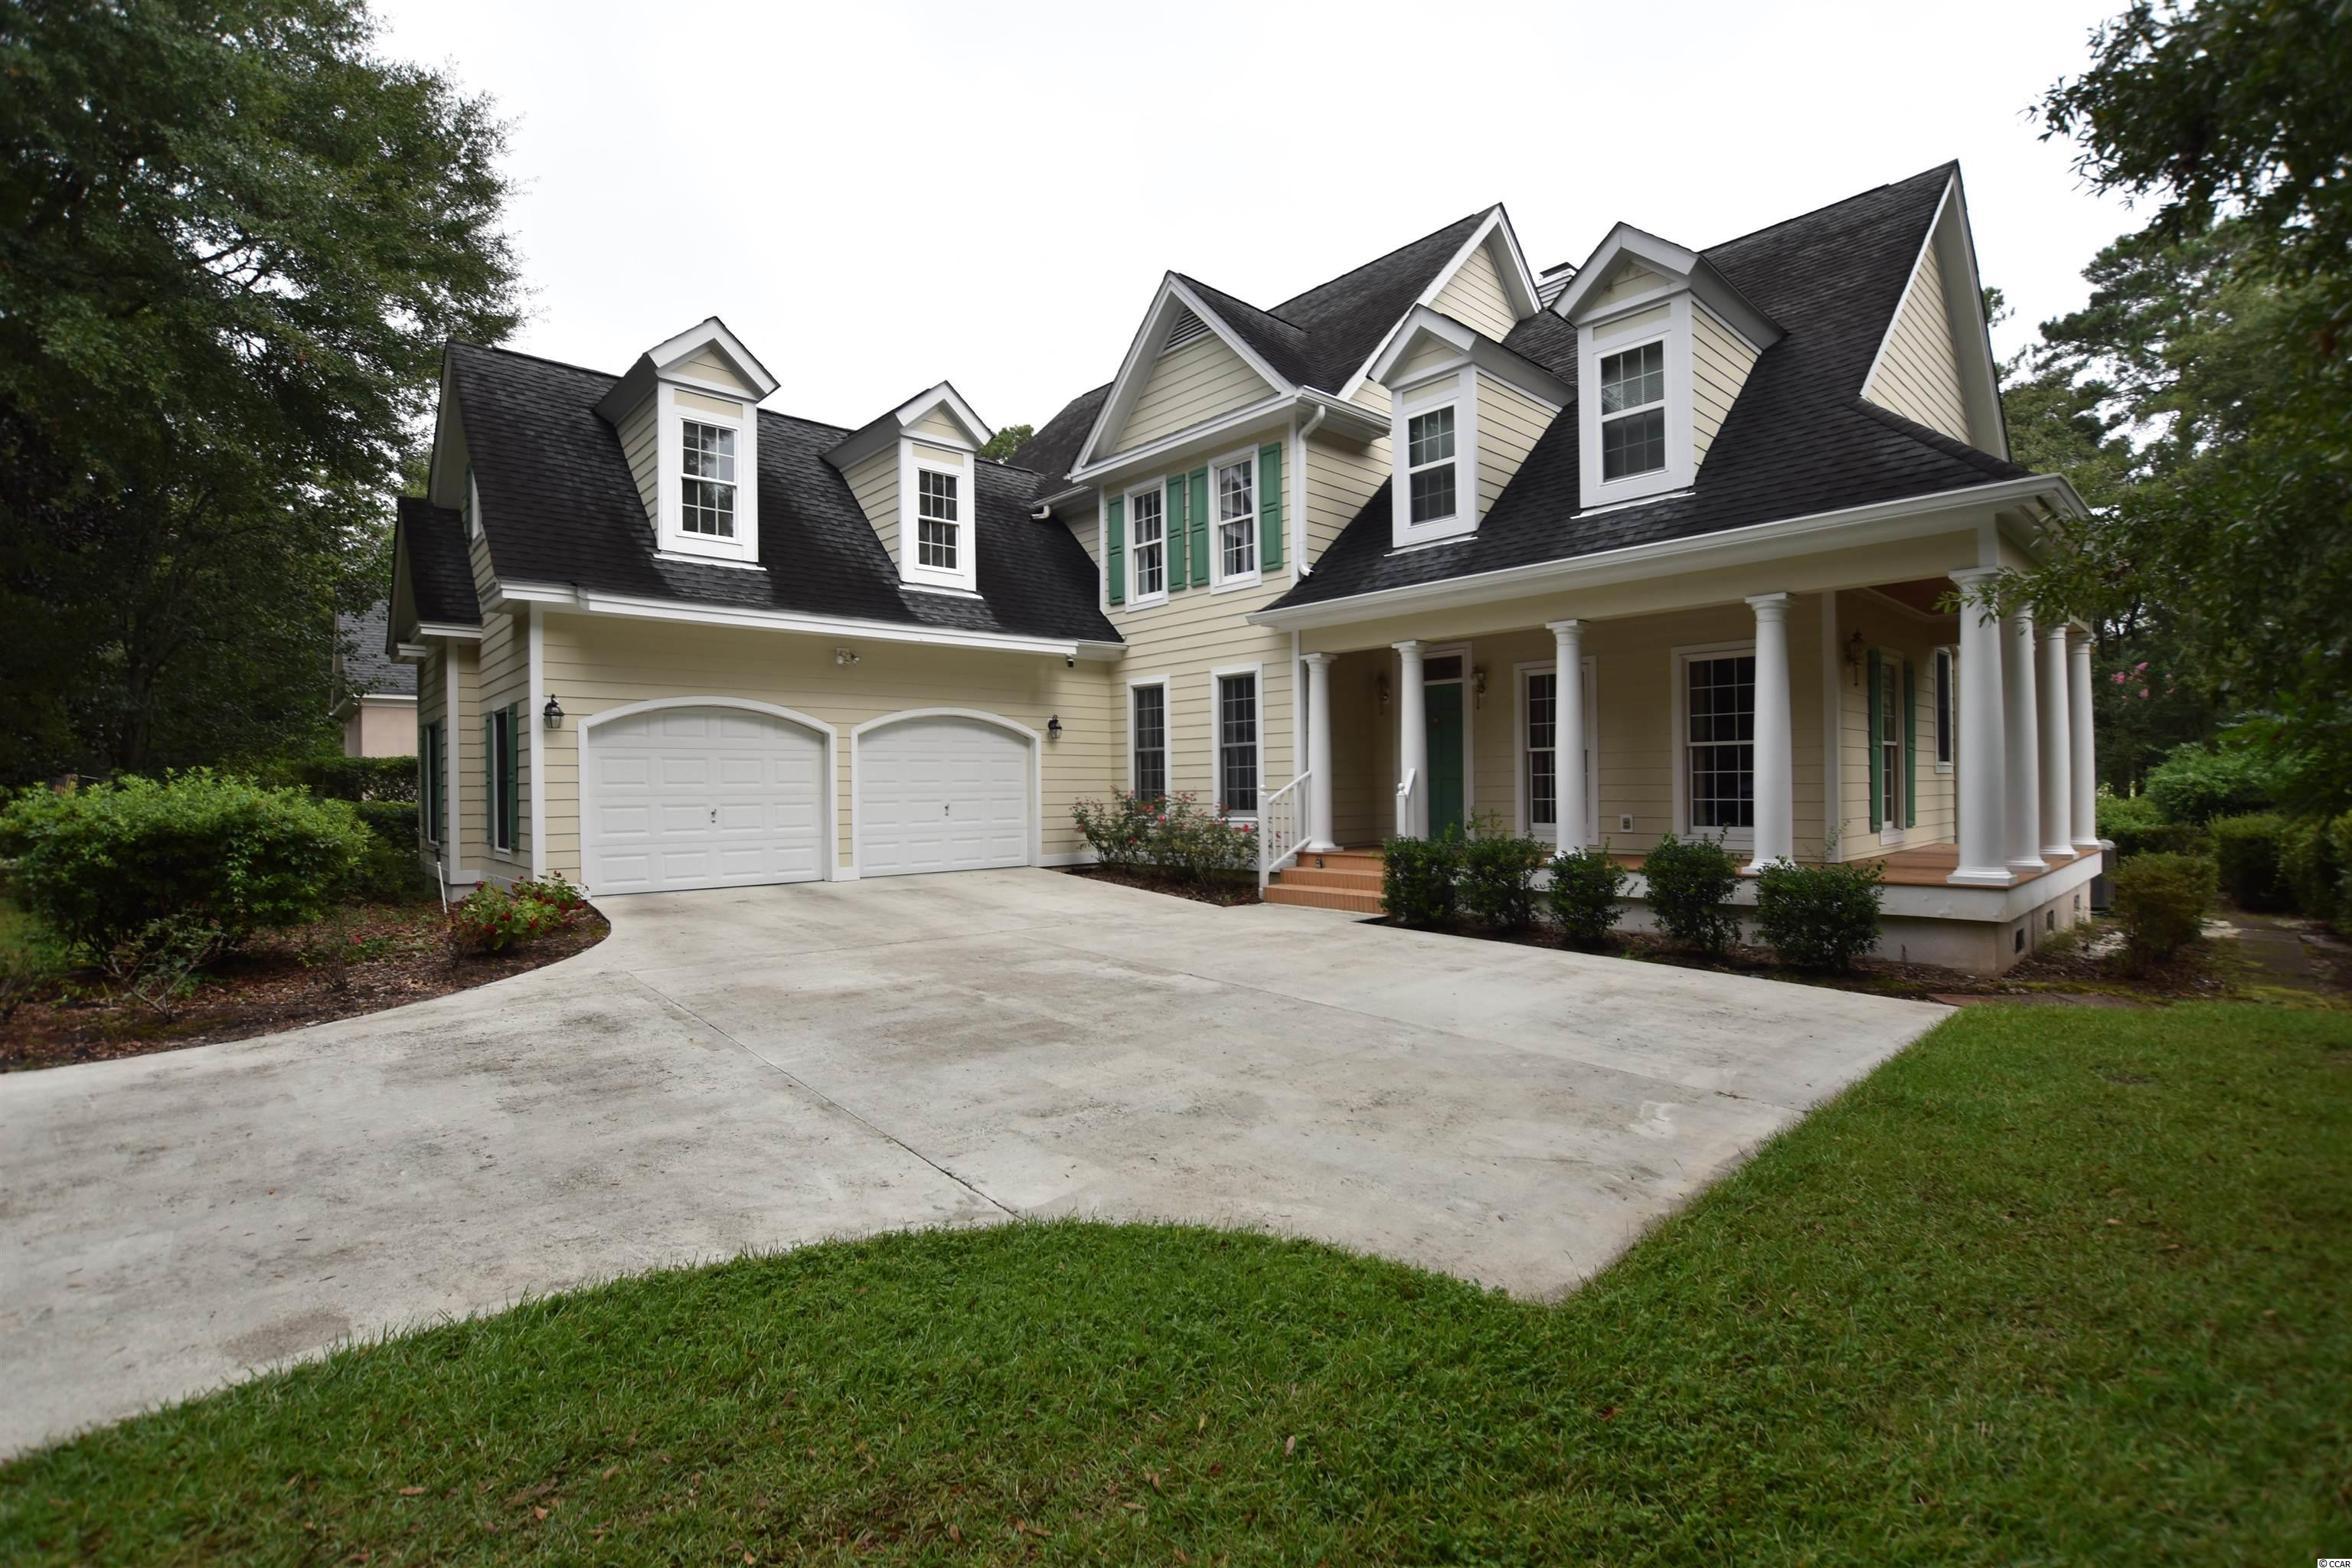 Immediately as you drive through the continuously manned security gates, you will be in absolute awe of the beauty that you will soon call home. You will quickly find that Wachesaw Plantation is not only an ideal location, but is also reminiscent of a meticulously manicured Rice Plantation of years past. Welcome to 2016 Turnberry Lane in the most desirable section of Wachesaw Plantation ! This spacious 4 br / 3 ba home boasts over 4400 total square feet featuring a formal floor plan, an absolutely perfect location, and a beautiful curb appeal. Noteworthy features / upgrades include incredible landscaping, spacious  kitchen with island, well maintained hard wood flooring,incredible storage space, a spacious screened in porch, a comfortable outdoor living area that takes full advantage of your golf course views, and so much more. This exclusive community in Murrells Inlet situated along the Waccamaw River Featuring 24hrmanned security, members only golf course, private dining, and so much more.